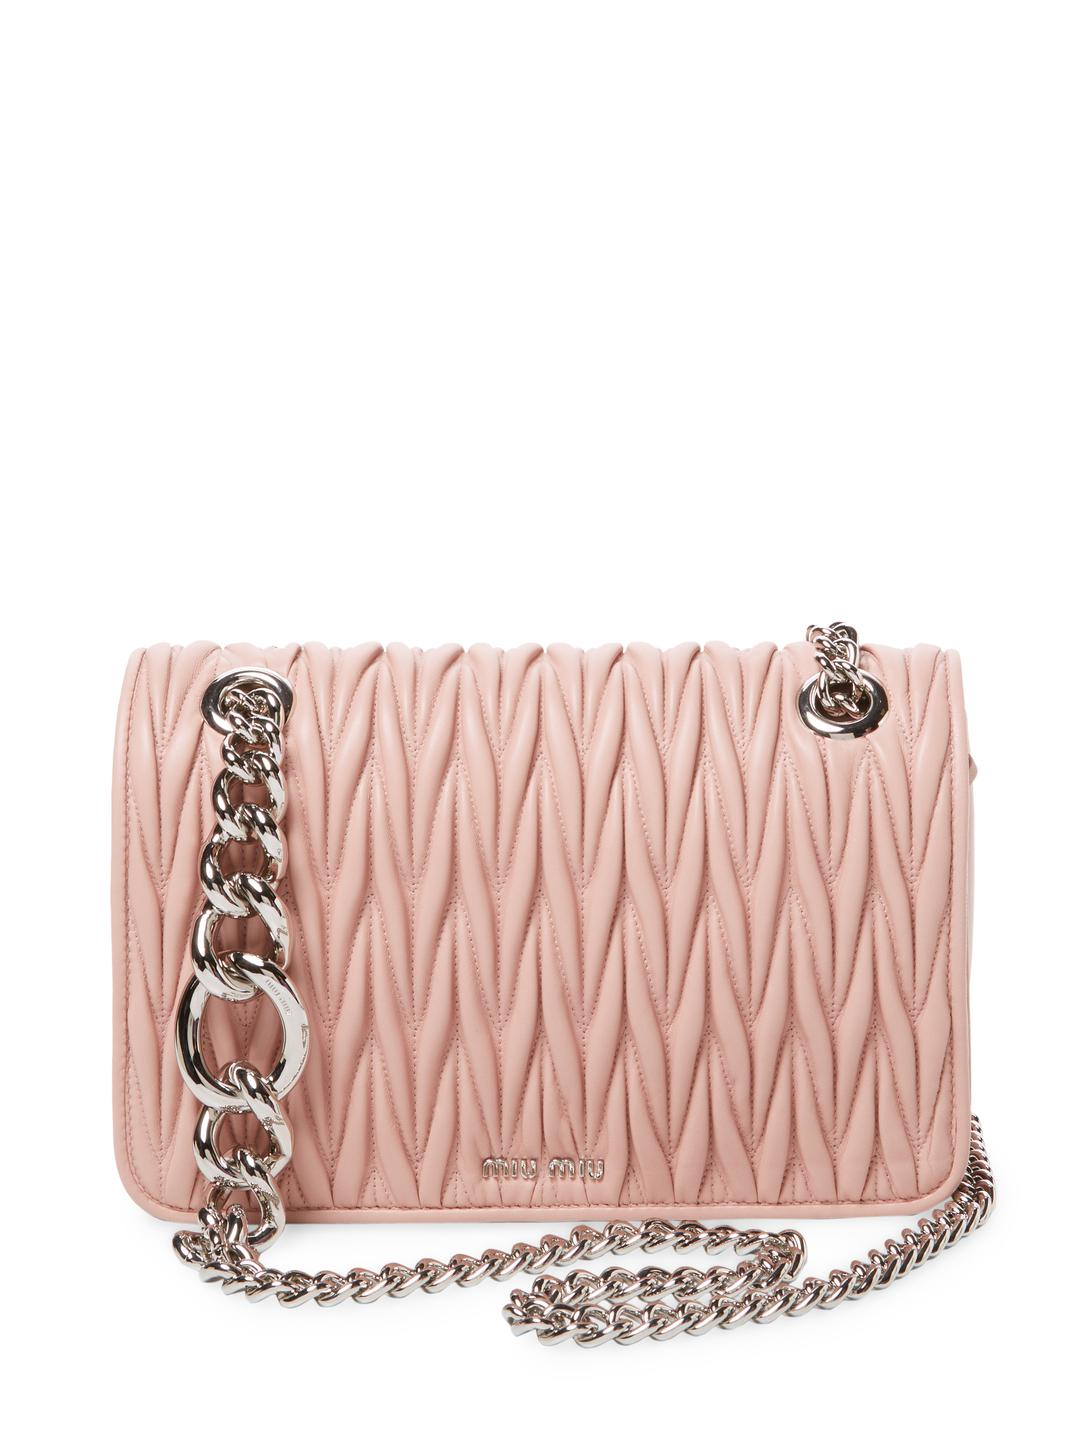 955122ddbb5e Gallery. Previously sold at  Gilt · Women s Miu Miu Shoulder Bag Women s Miu  Miu Matelasse ...